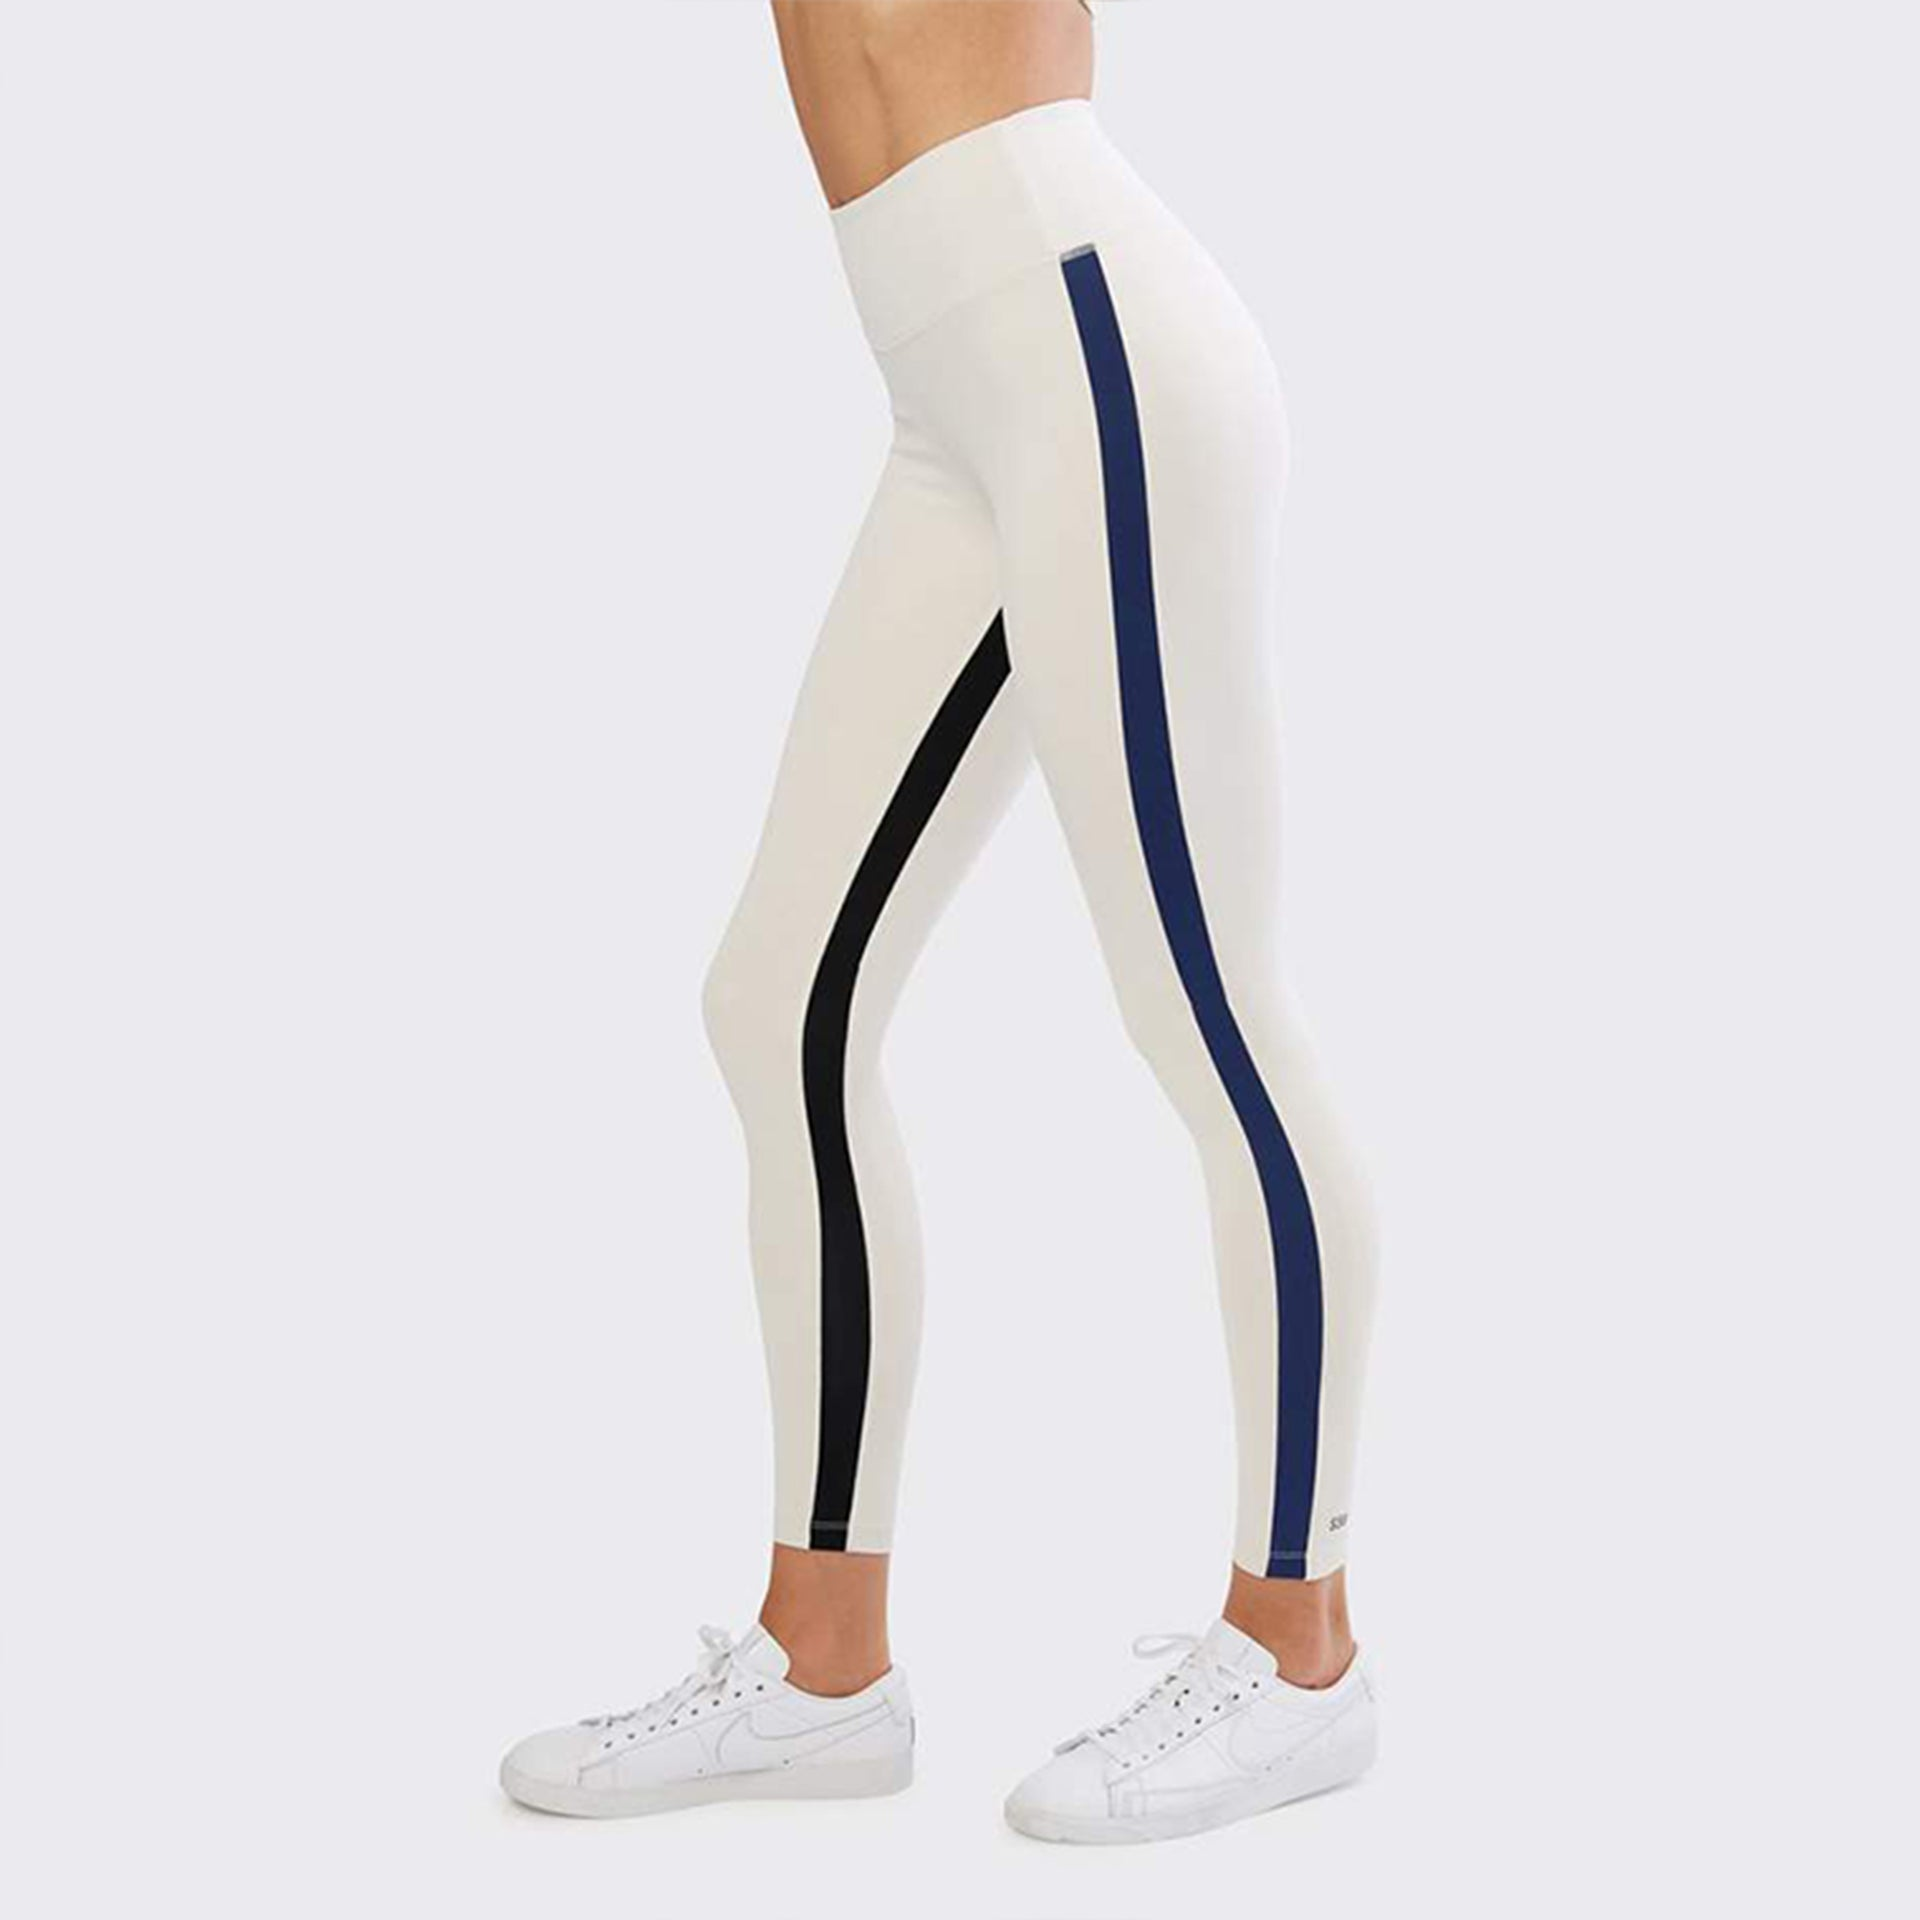 Splits 59 Inline Techflex 7/8 Leggings in Vintage White and Indigo